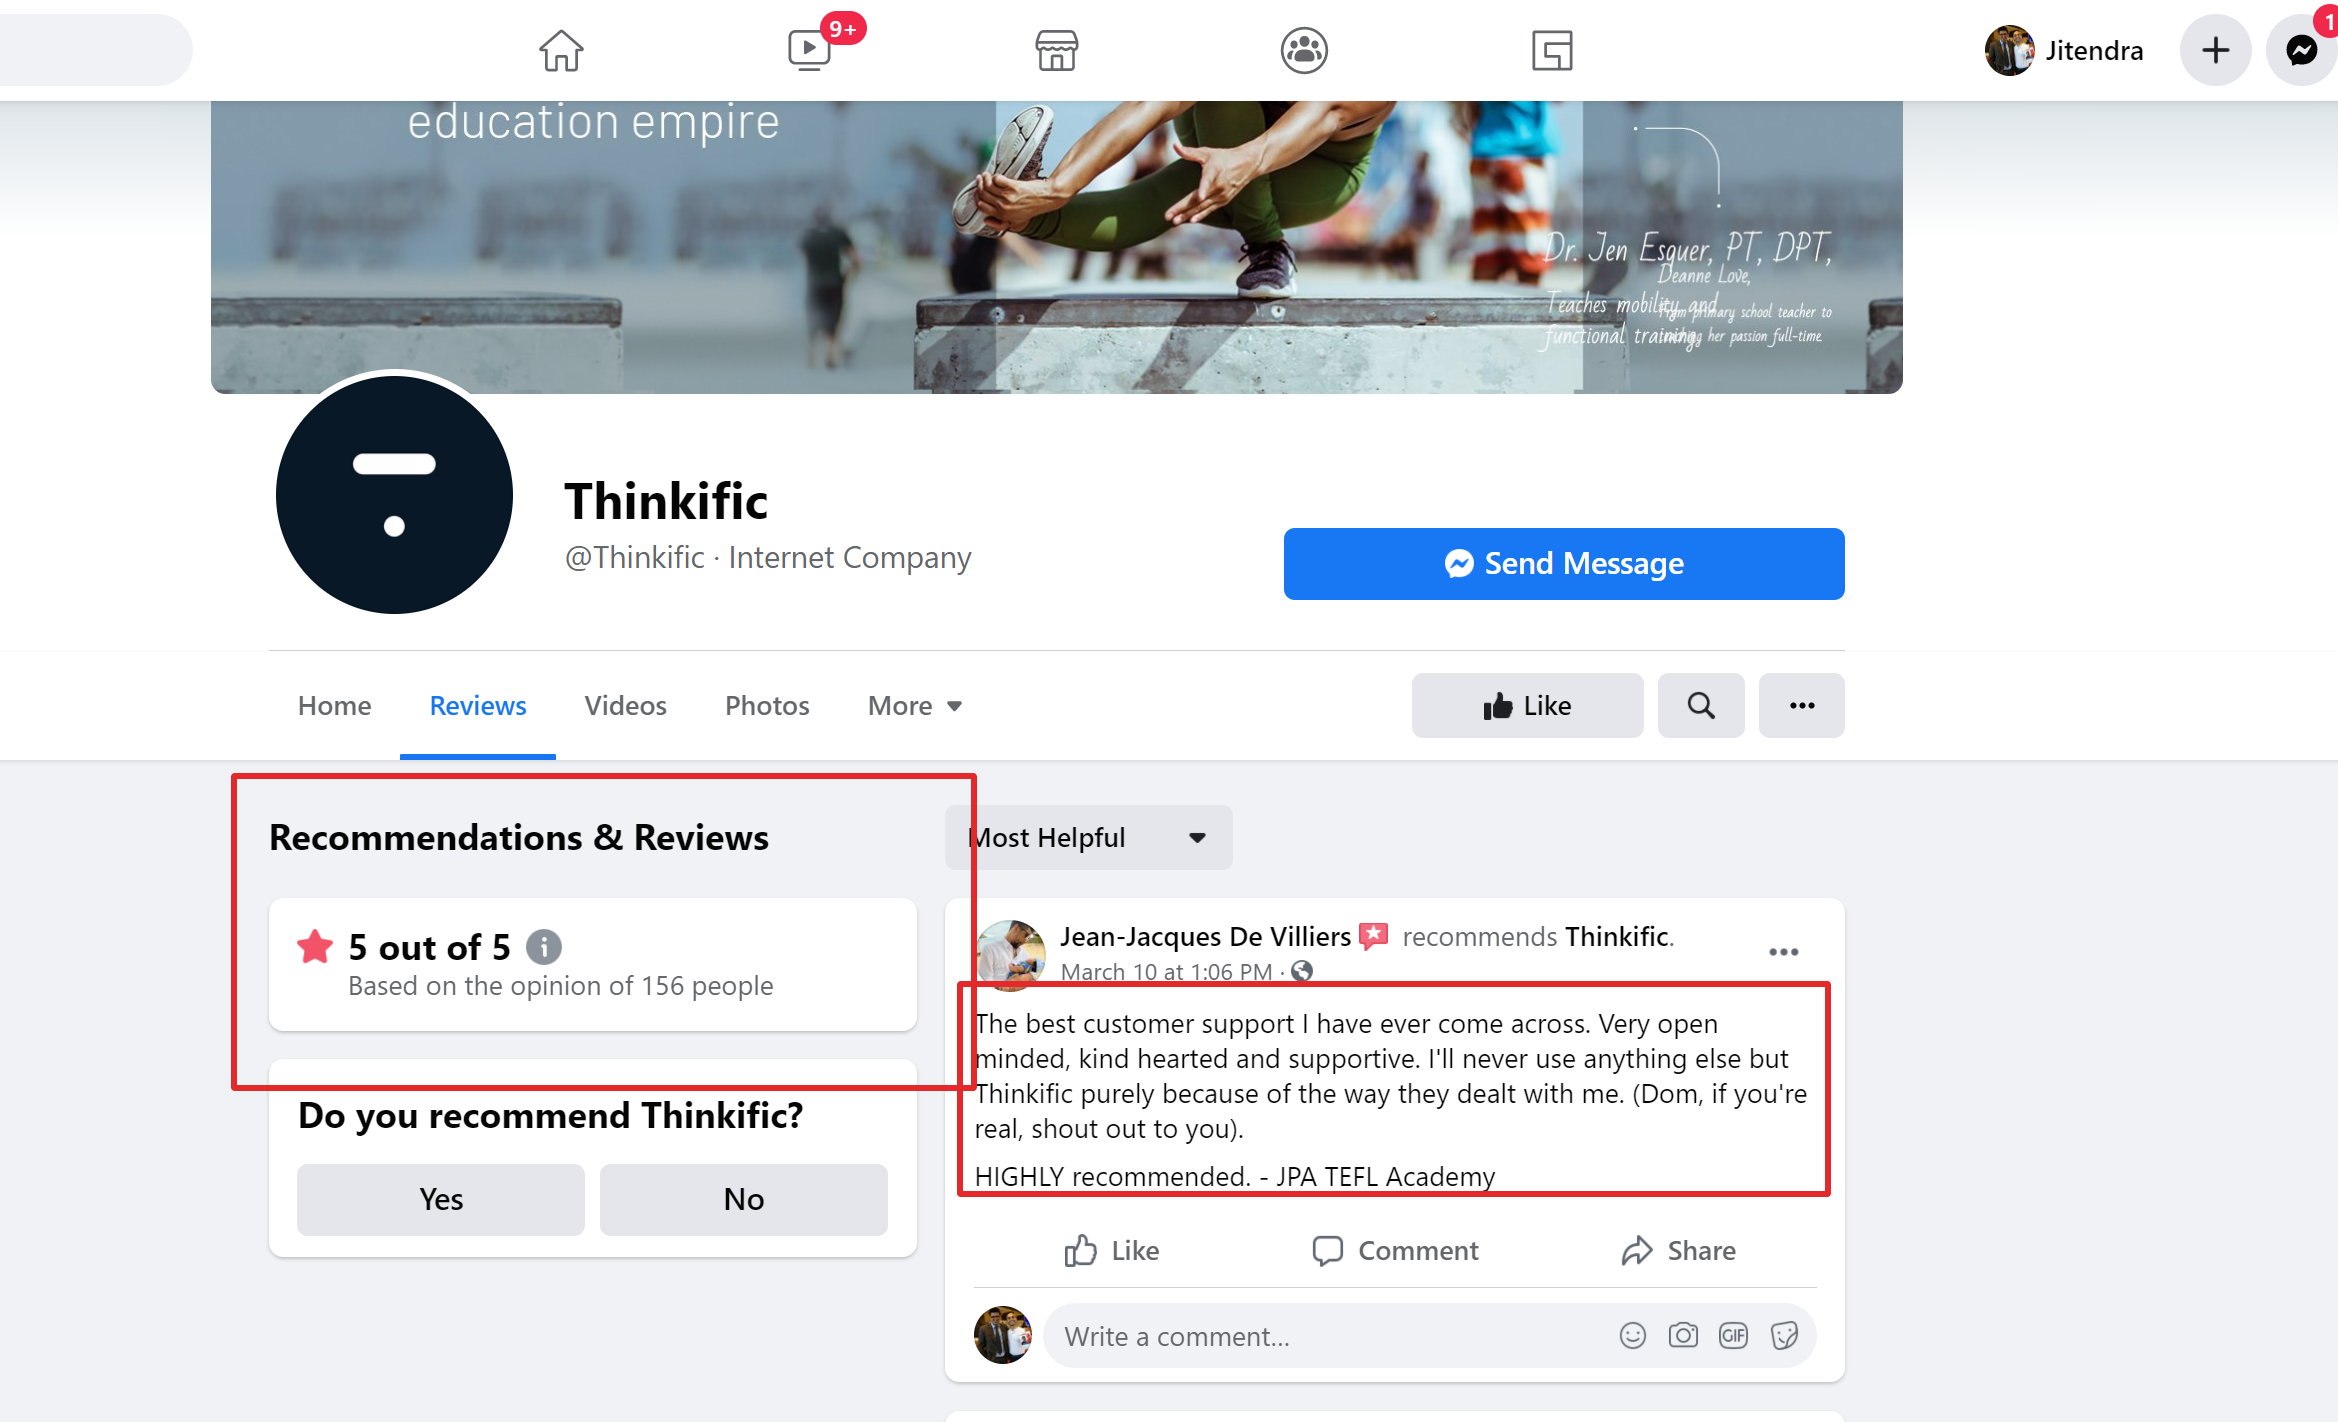 Thinkific Online Course Platform - Create, Market & Sell Courses